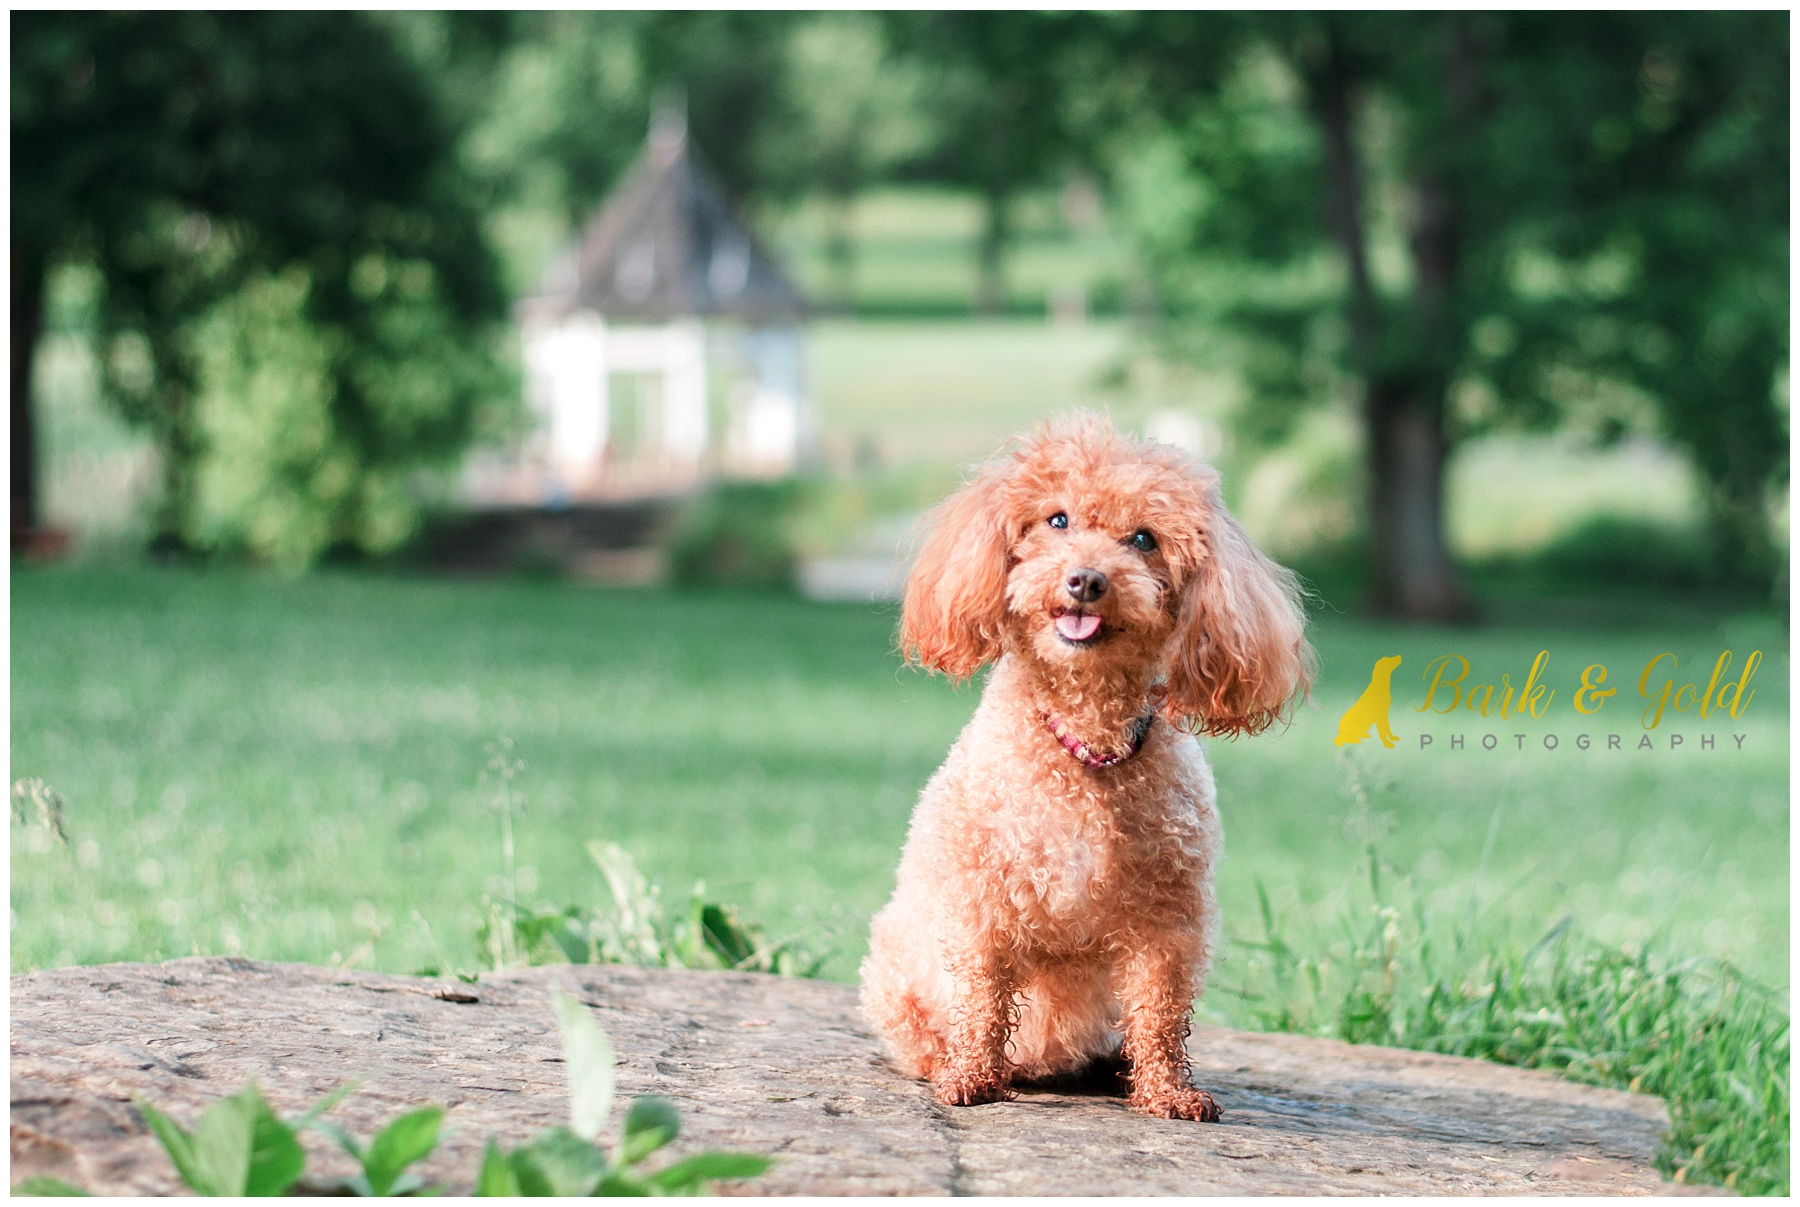 Ginger The Miniature Poodle Pittsburgh Pet Photography Bark Gold Photography Pittsburgh Pet And Dog Photographer